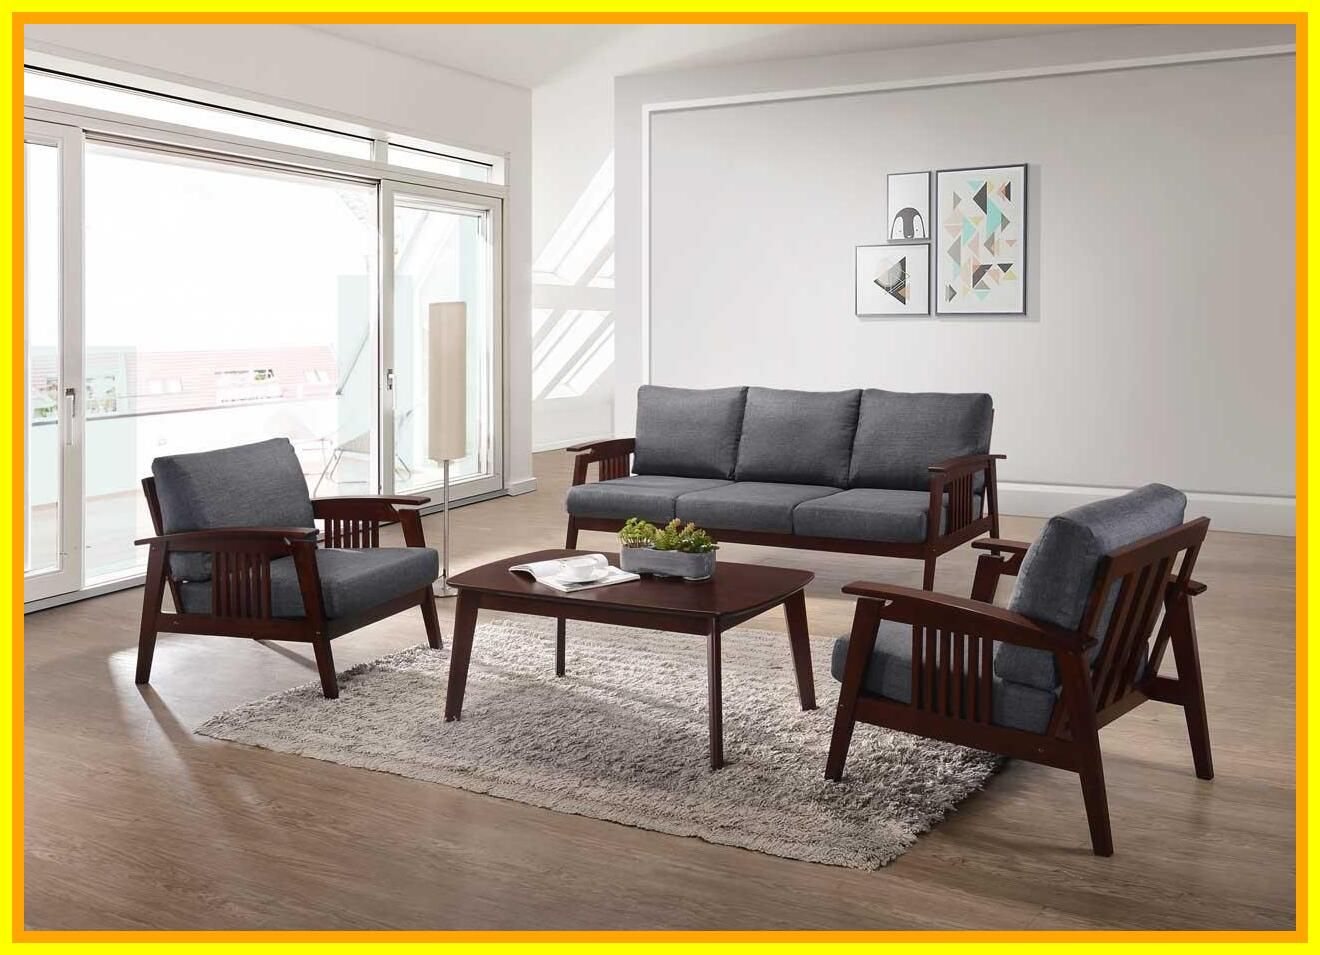 101 Reference Of Sofa Set Price Below 20000 In 2020 Sofa Set Price Small Living Room Decor Sofa Set